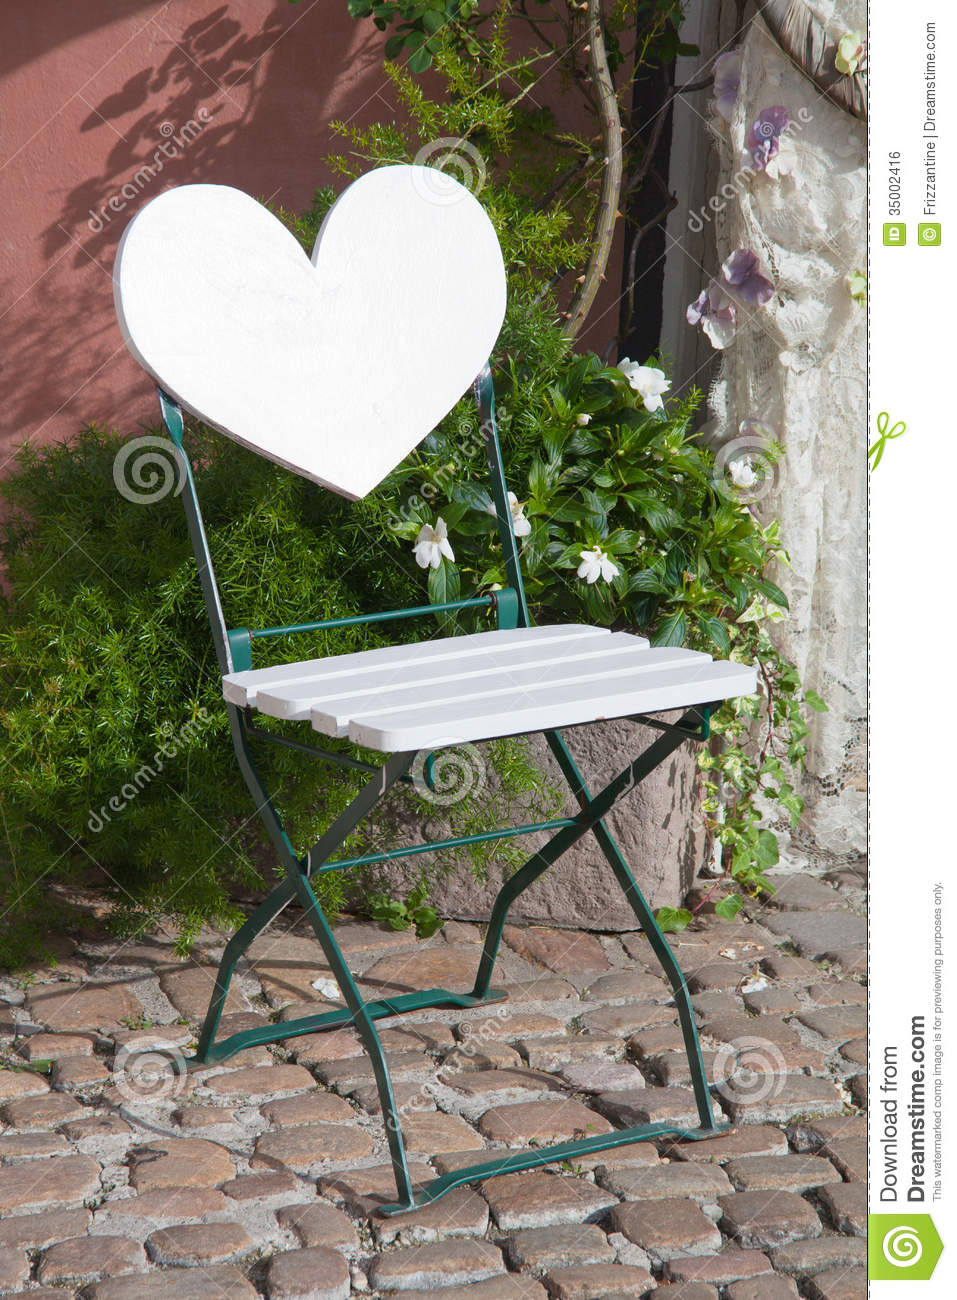 Garden Chair With Heart Shape Backrest On Cobblestone With